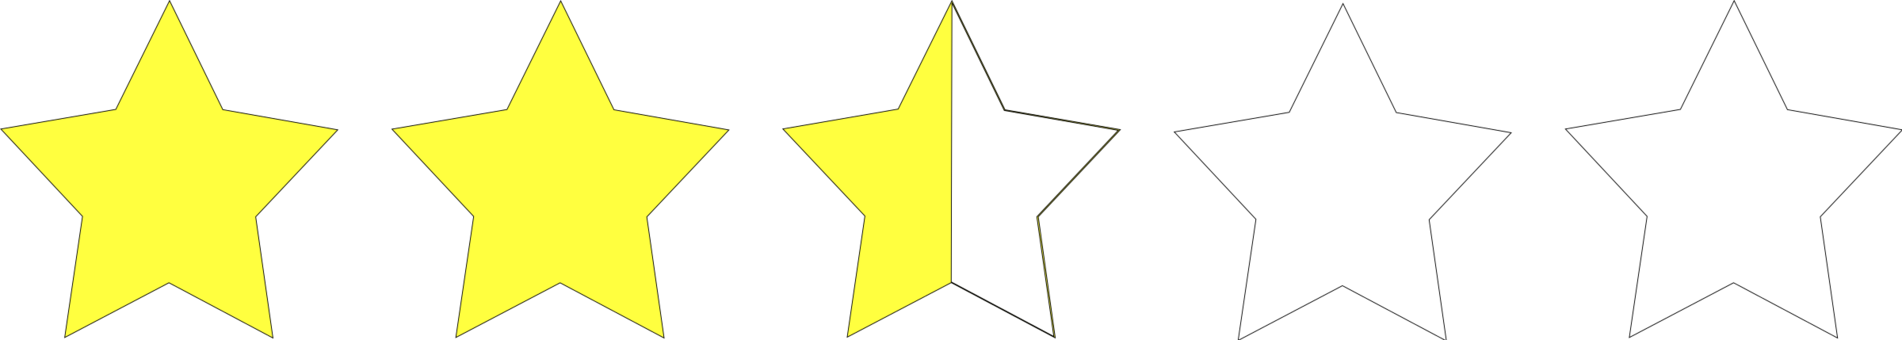 Star Computer Icons Point Document Angle Free Commercial Clipart